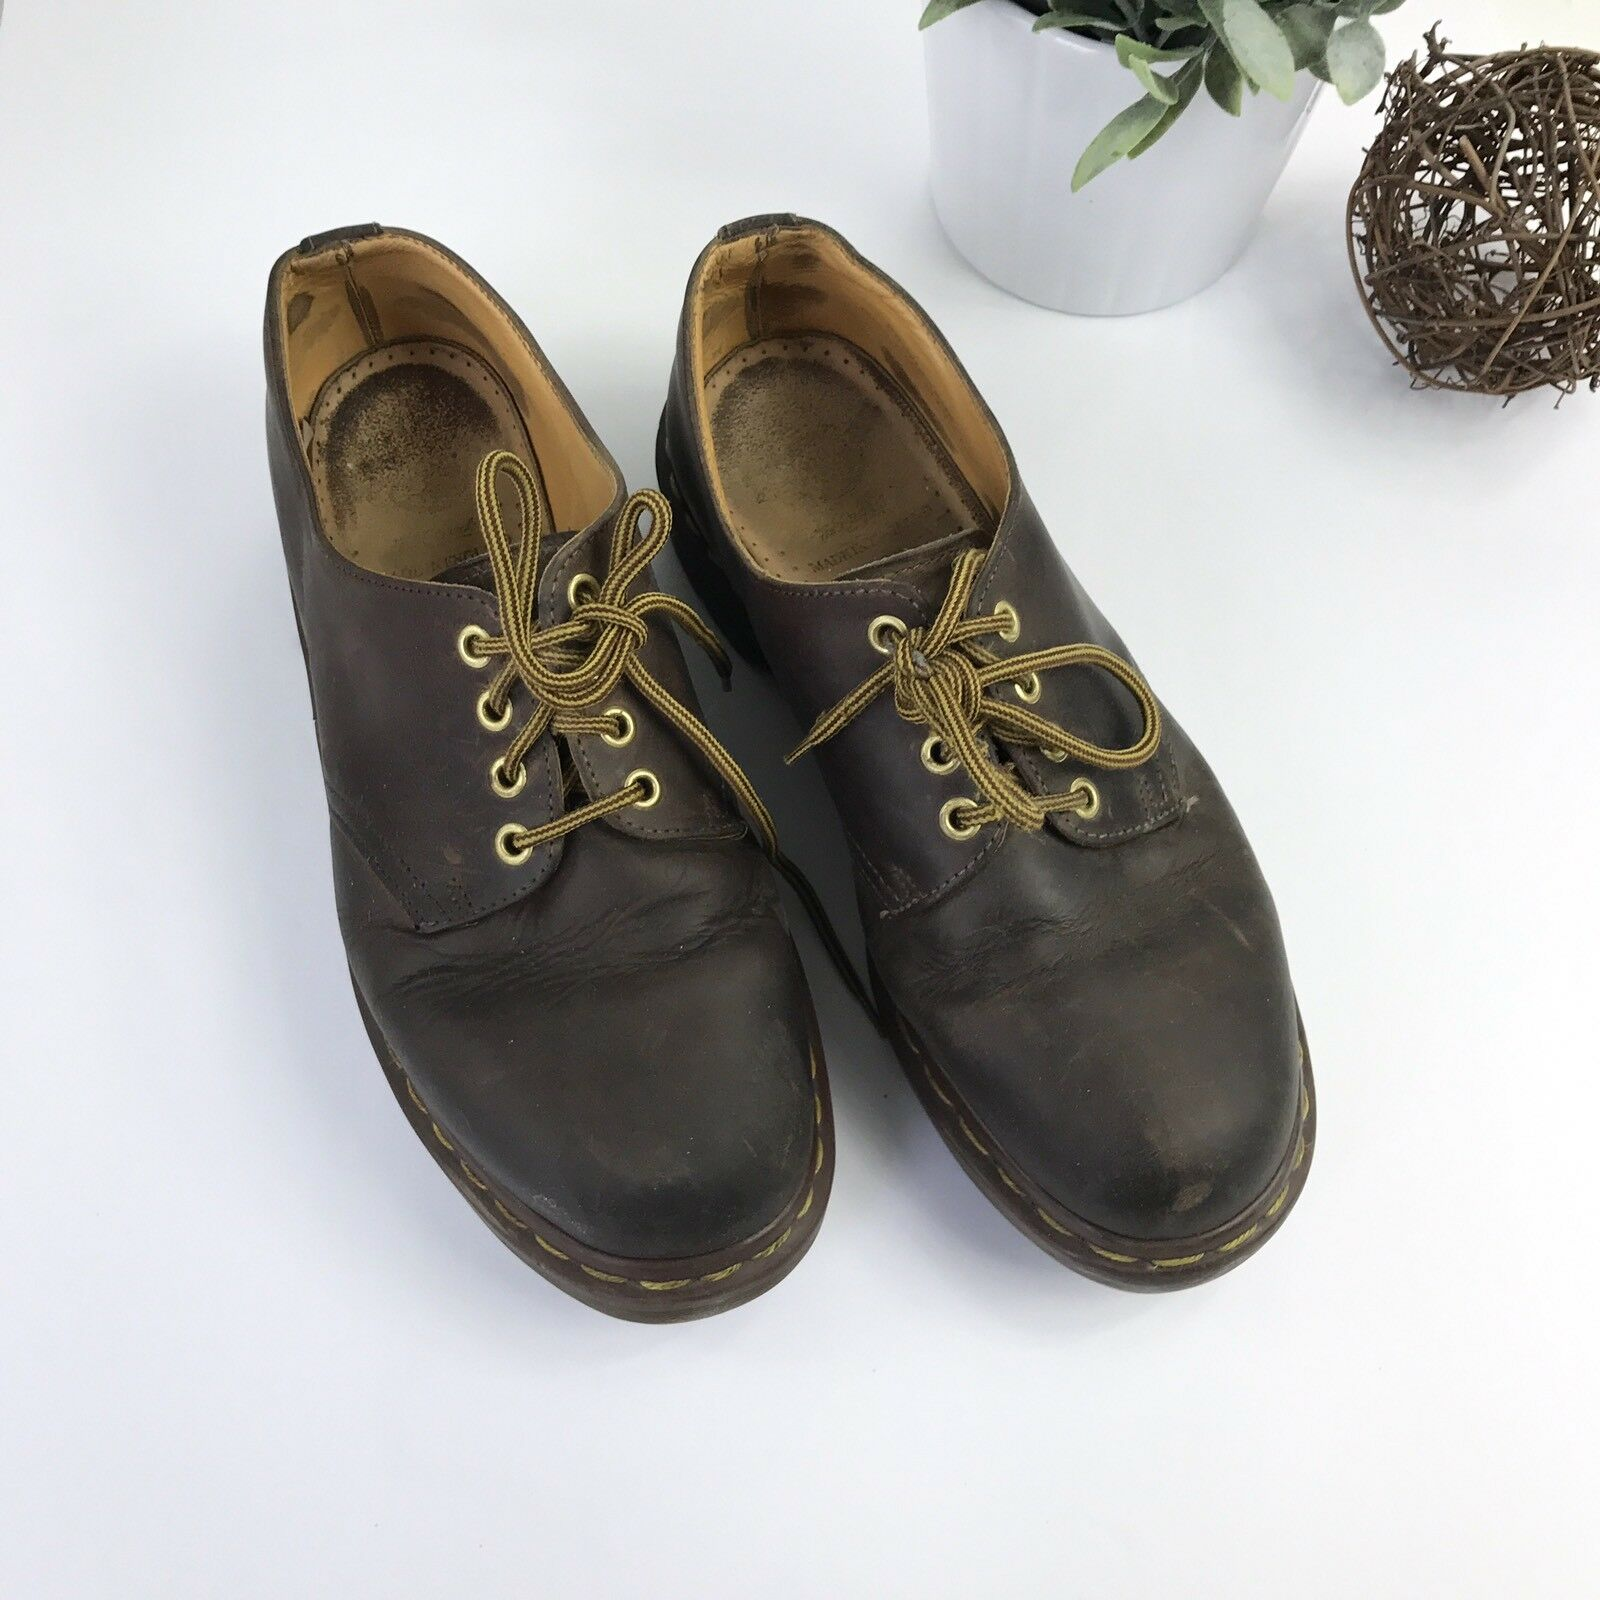 DR. MARTENS Vintage Brown Leather Low Profile 4 Eye Lace Boots 8 Made in England